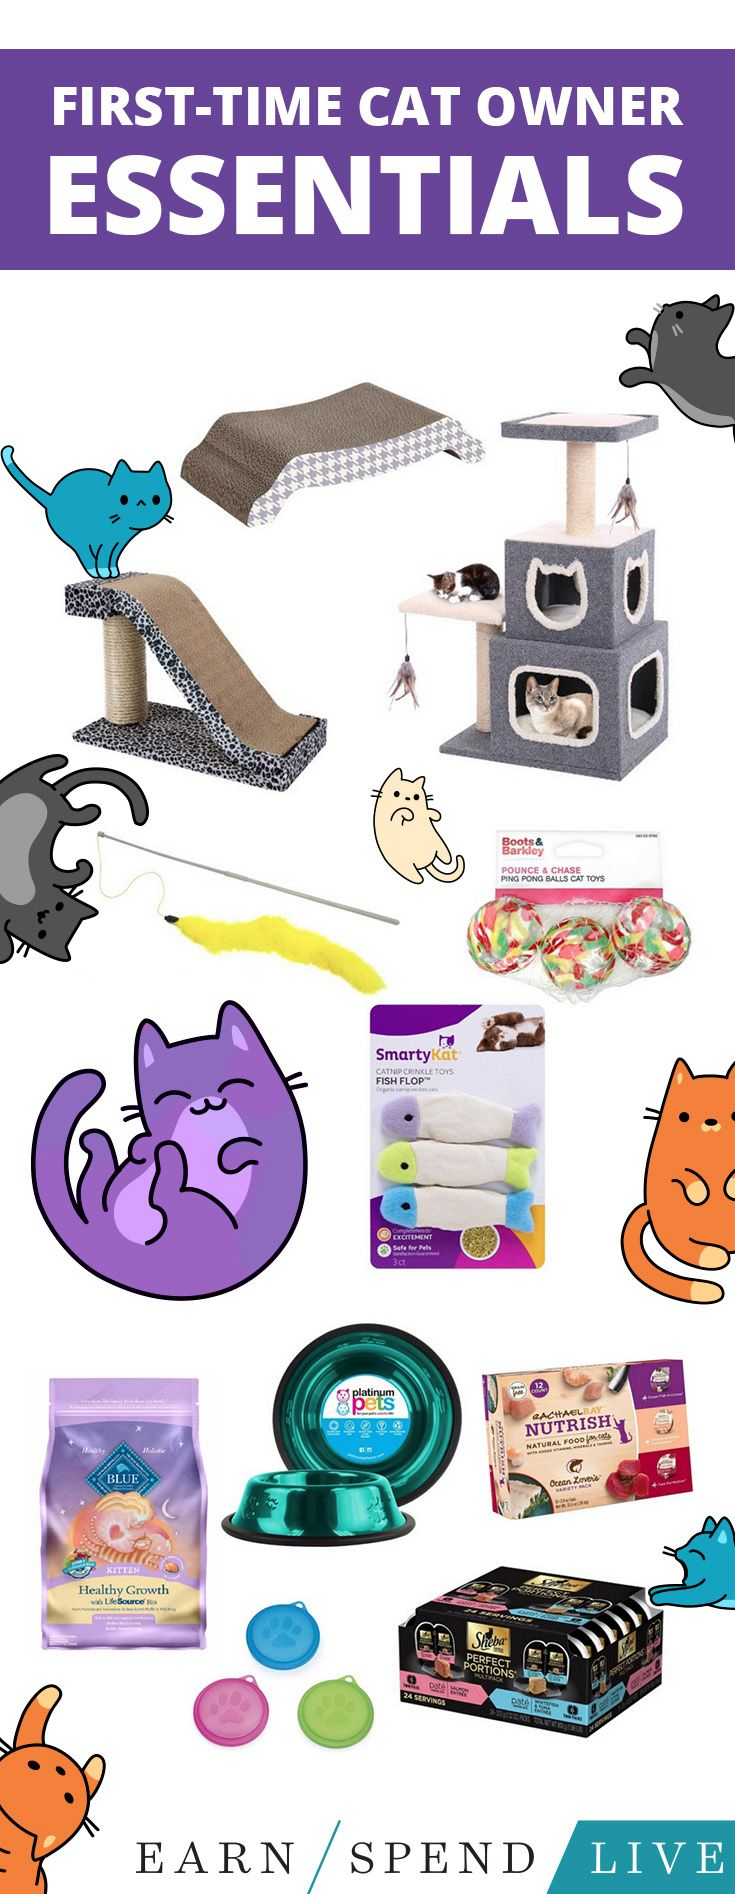 There are a lot of essentials your new kitten needs, as well as a few things that are just fun for both of you. Here's a list of everything every cat owner should buy.